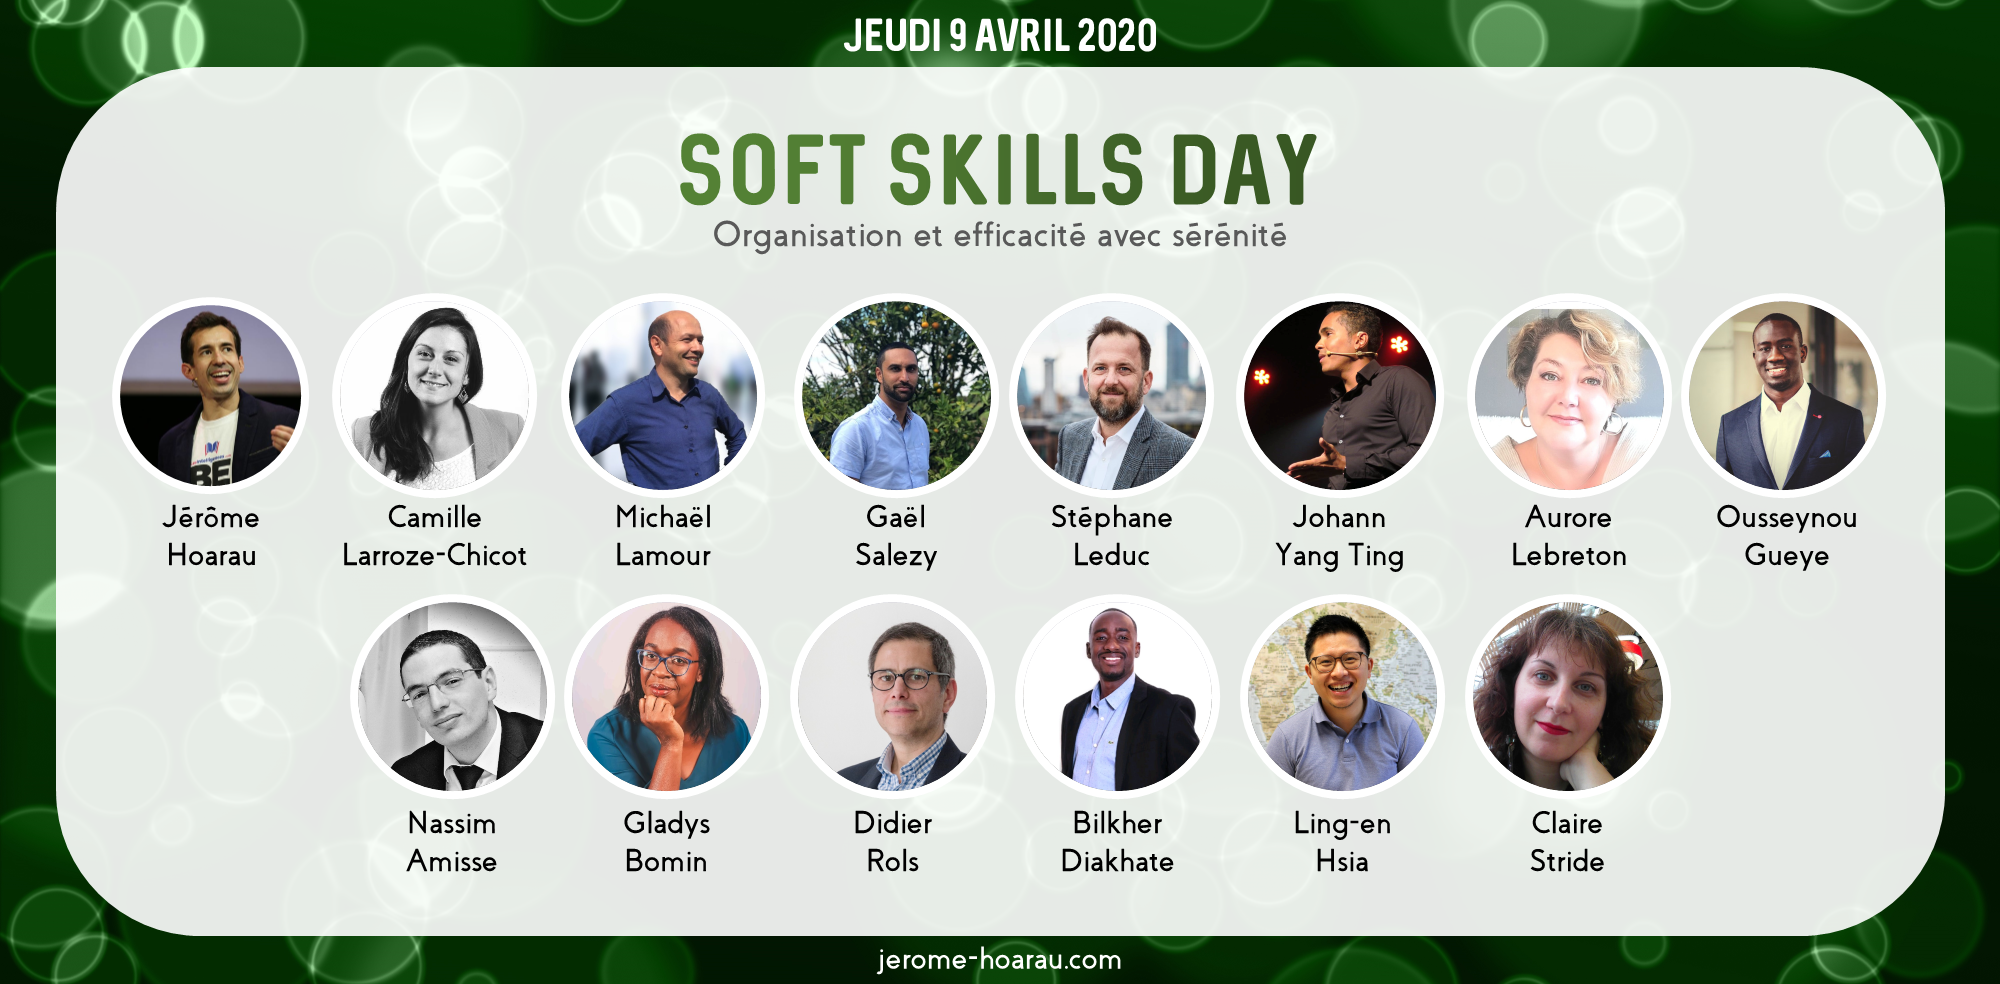 Banniere globale SS Day 9 avril 2020